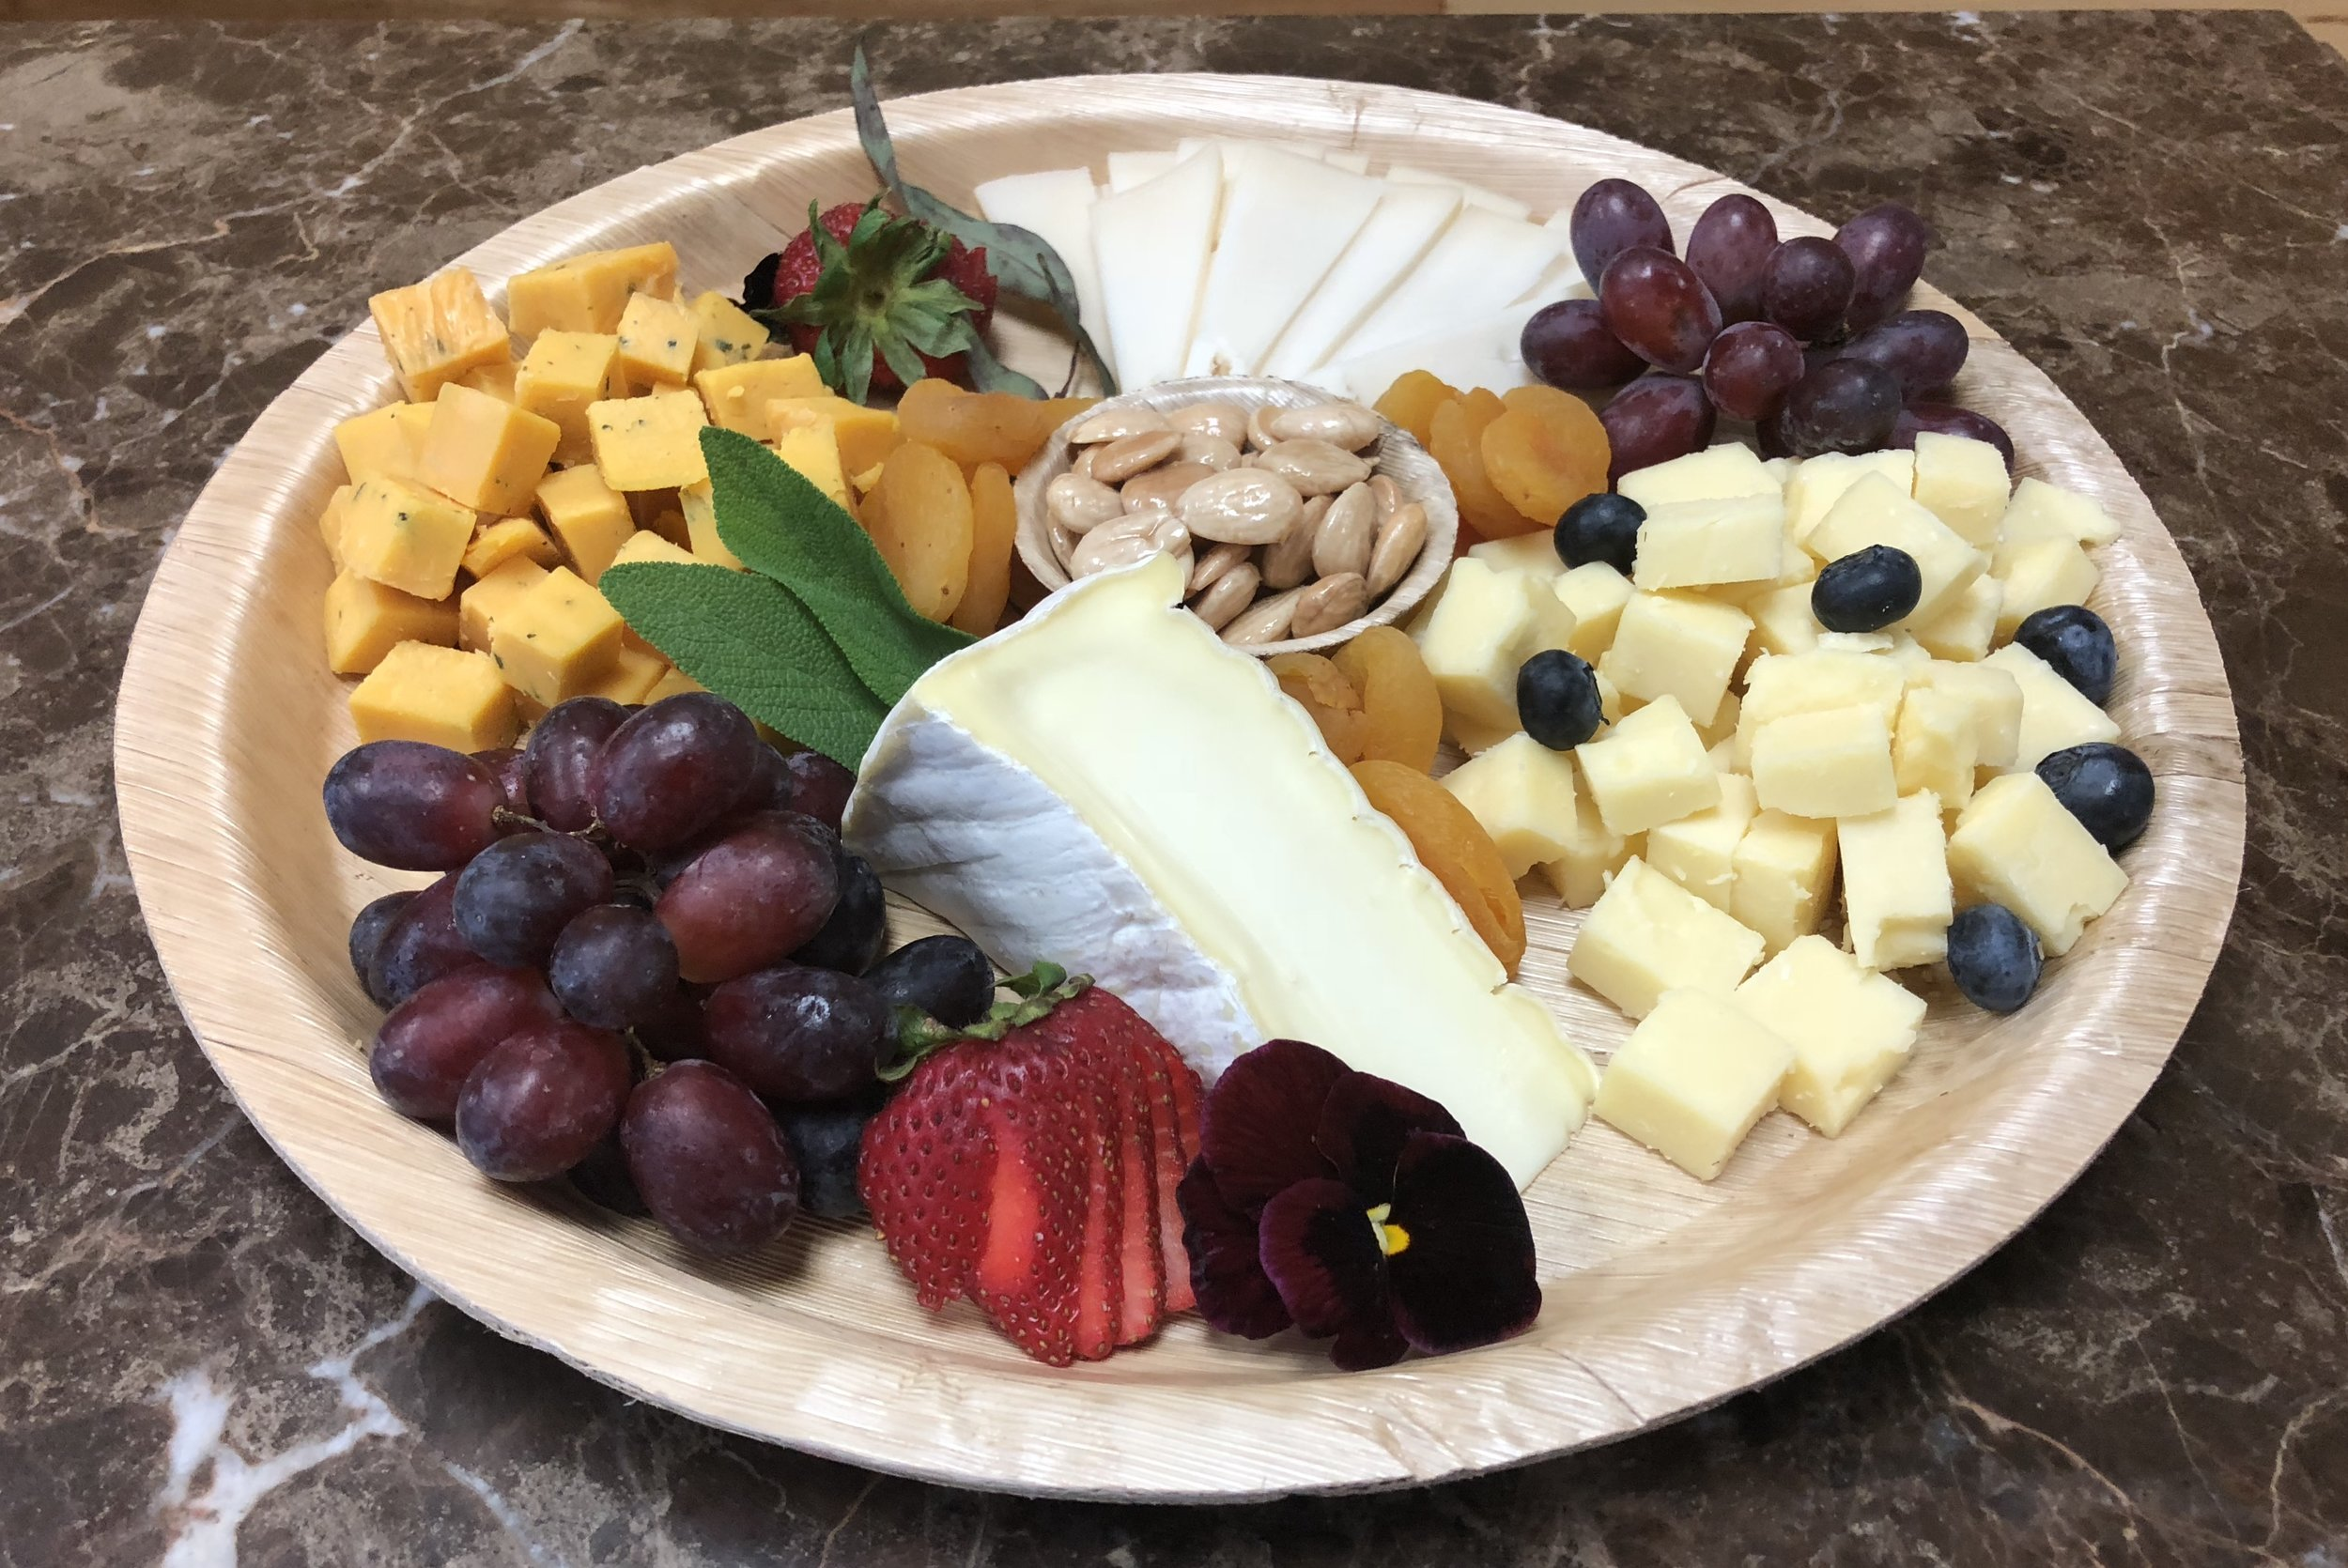 Medium Cheese Plate - Four select cheese, nuts, fruit, mixed greens